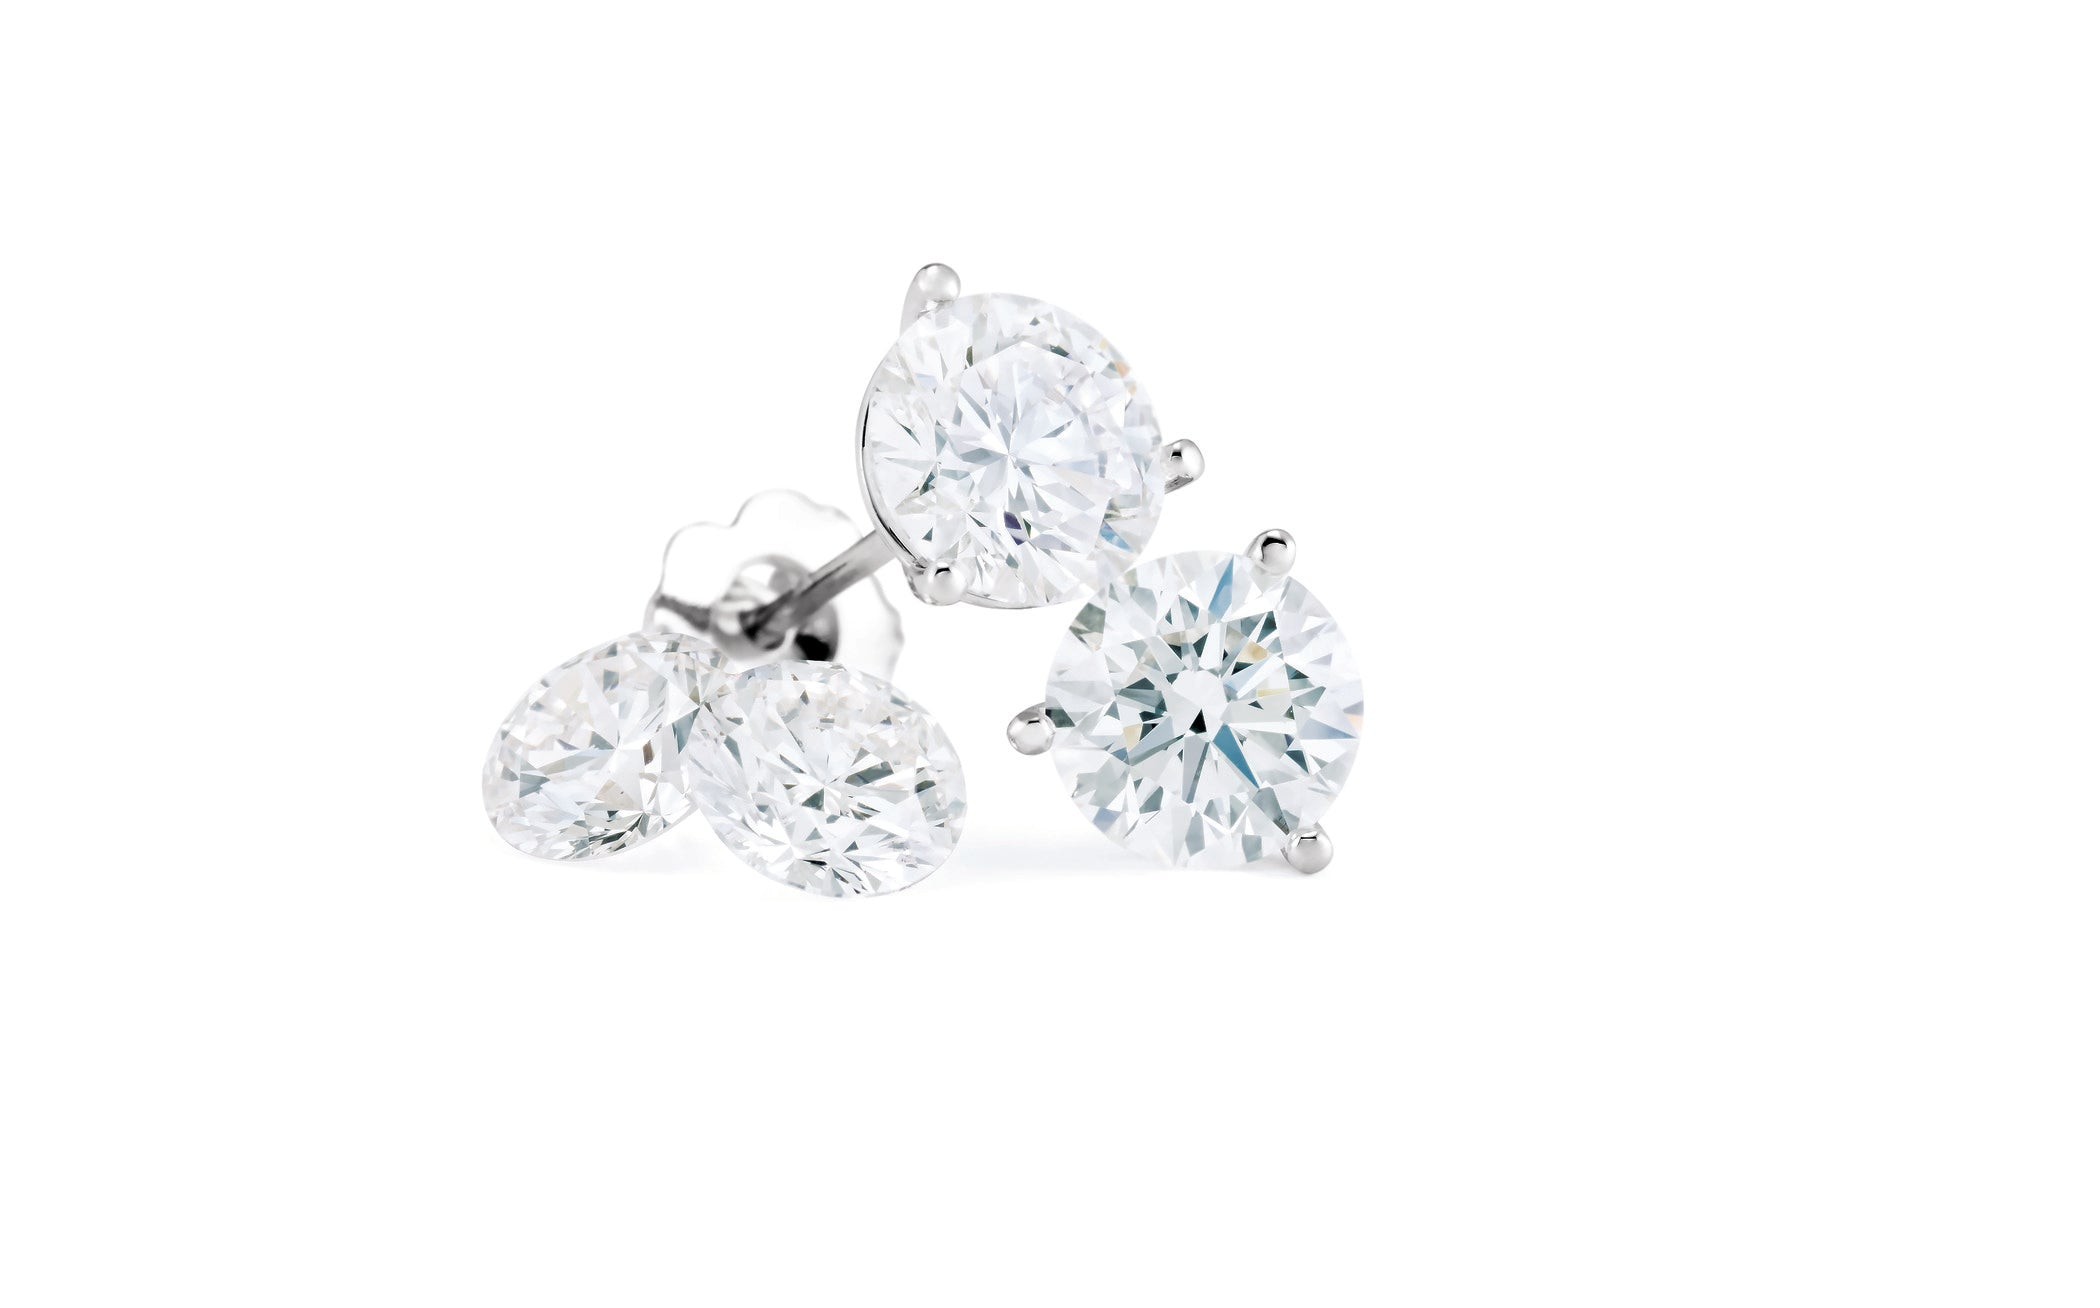 Martini Set Diamond Stud Earrings. G/H Color, I2 in Clarity